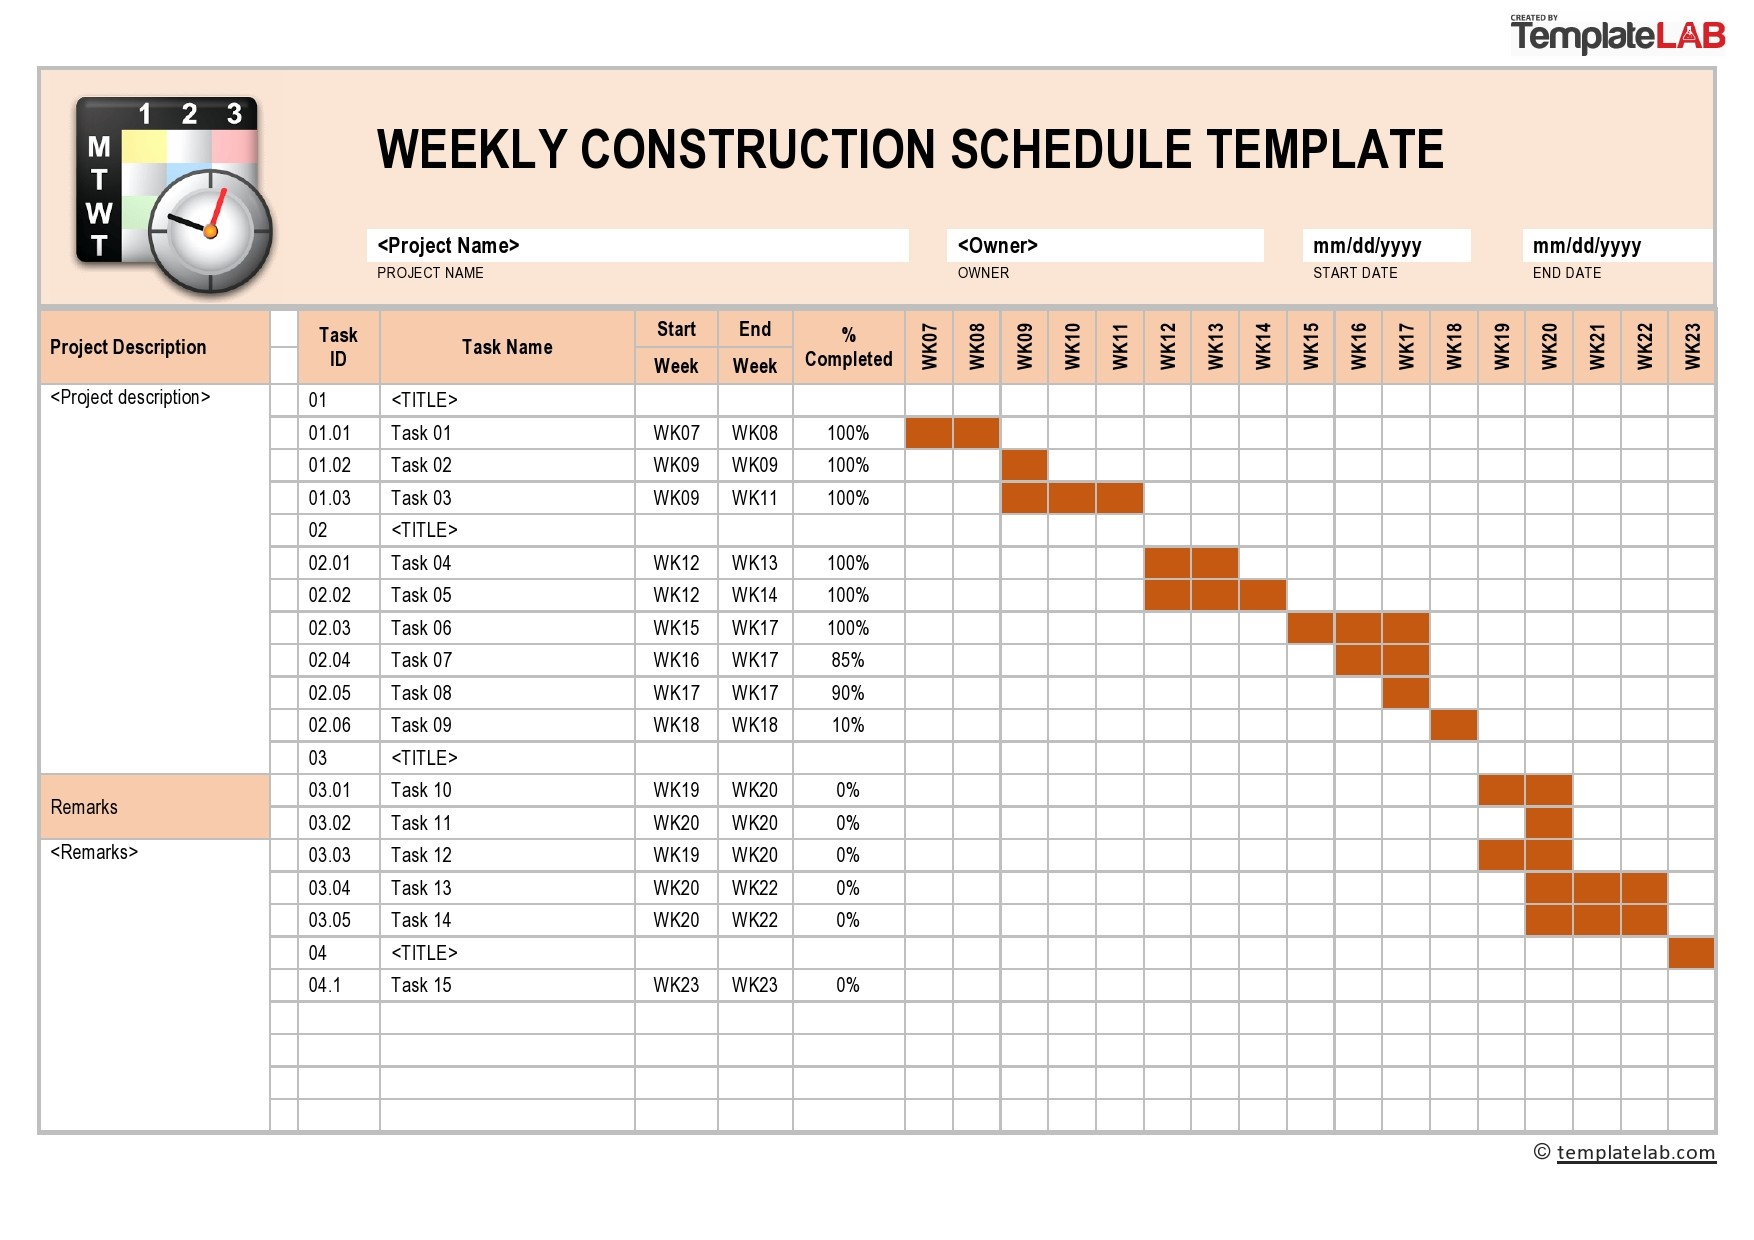 Free Weekly Construction Schedule - TemplateLab